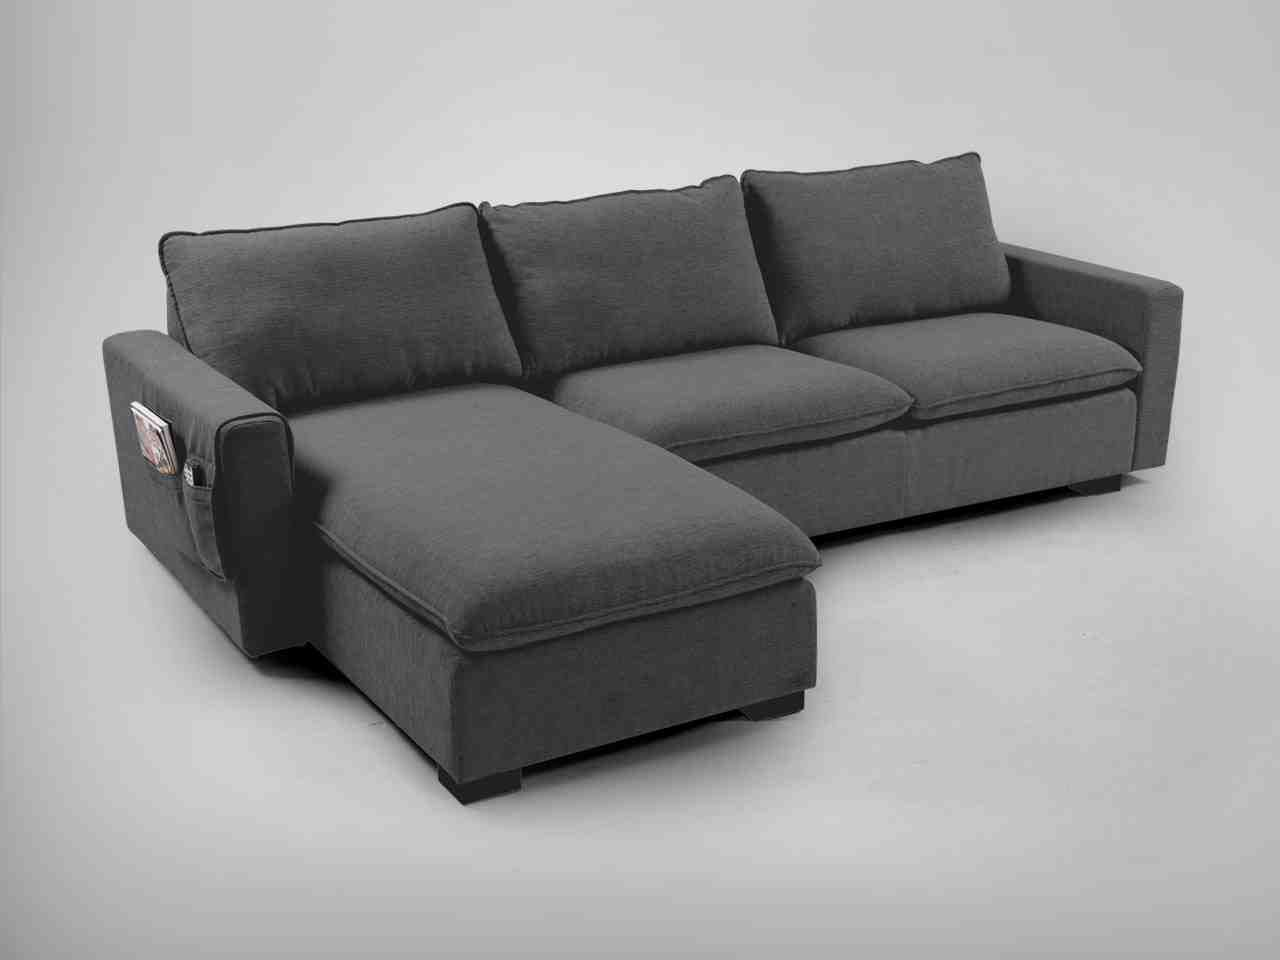 L Shaped Sofa And Why It Makes Sense Home Furniture Design Grey L Shaped Sofas L Shaped Sofa Grey Sofa Design